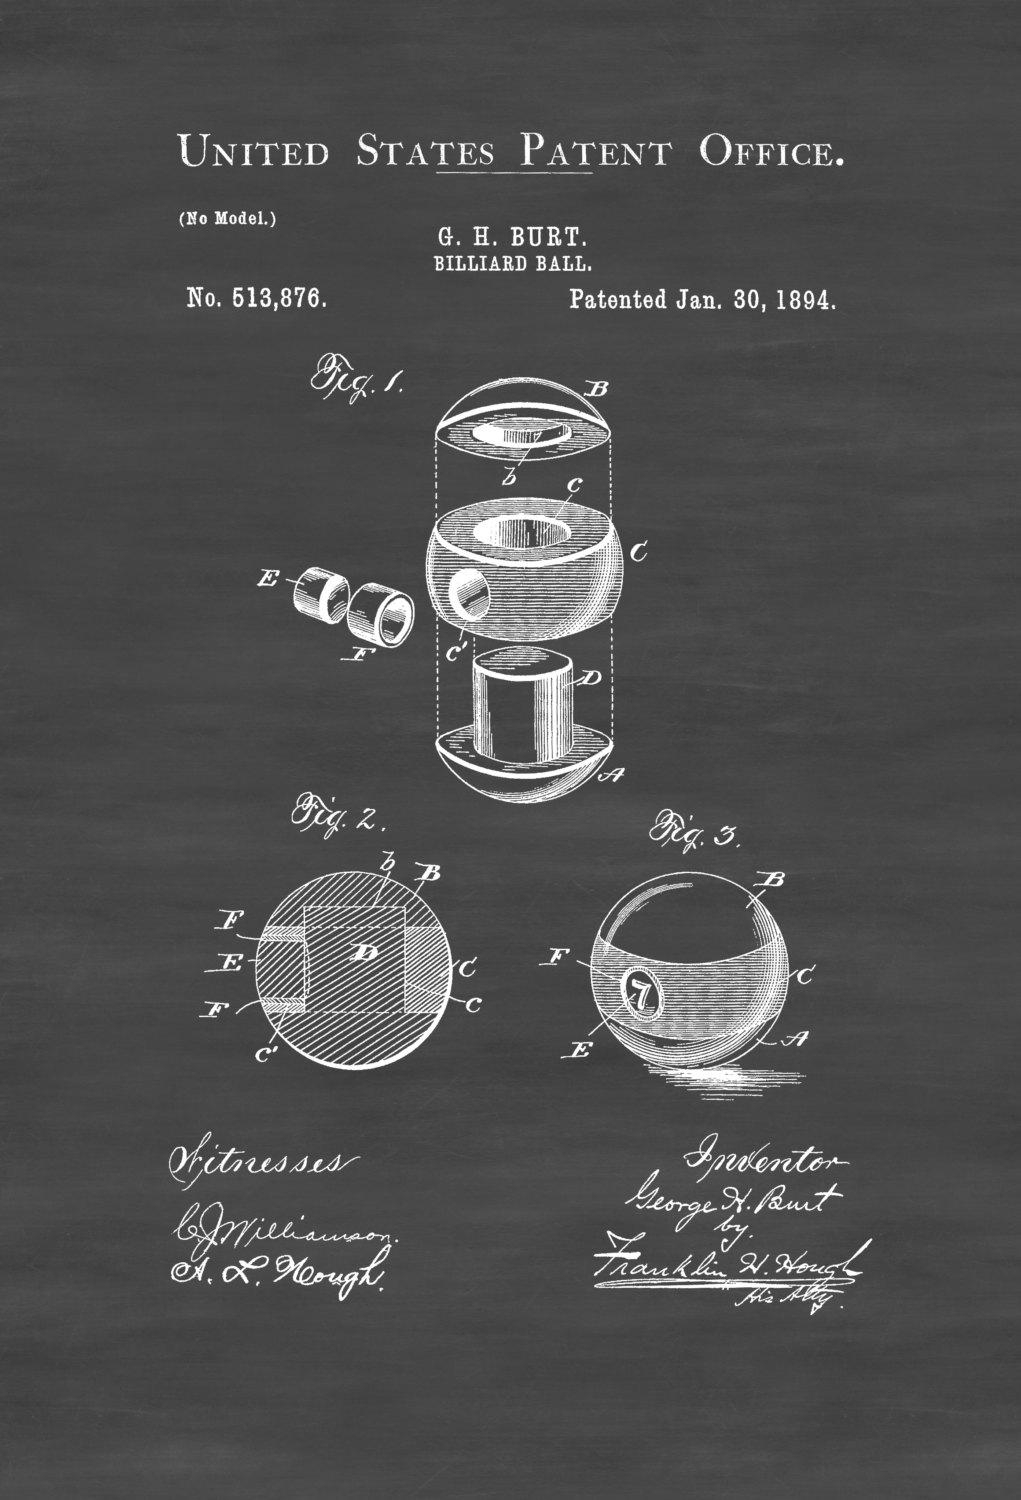 Billiard Ball Patent 1894 – Patent Print, Wall Decor, Pool Table Intended For Billiard Wall Art (View 6 of 20)